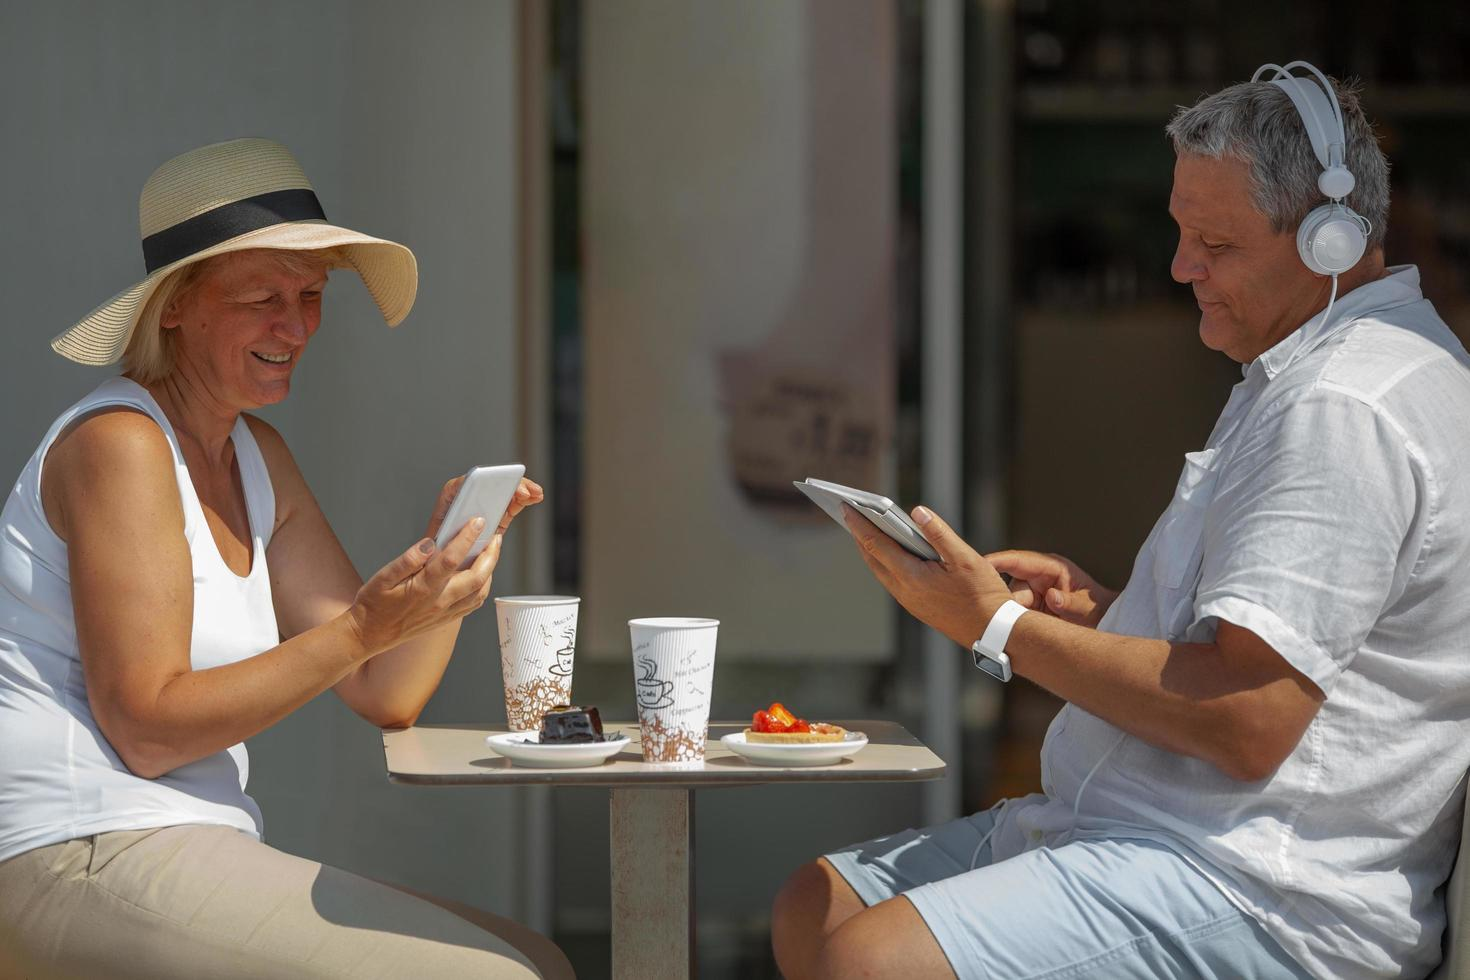 Mature couple eating outside with electronics photo